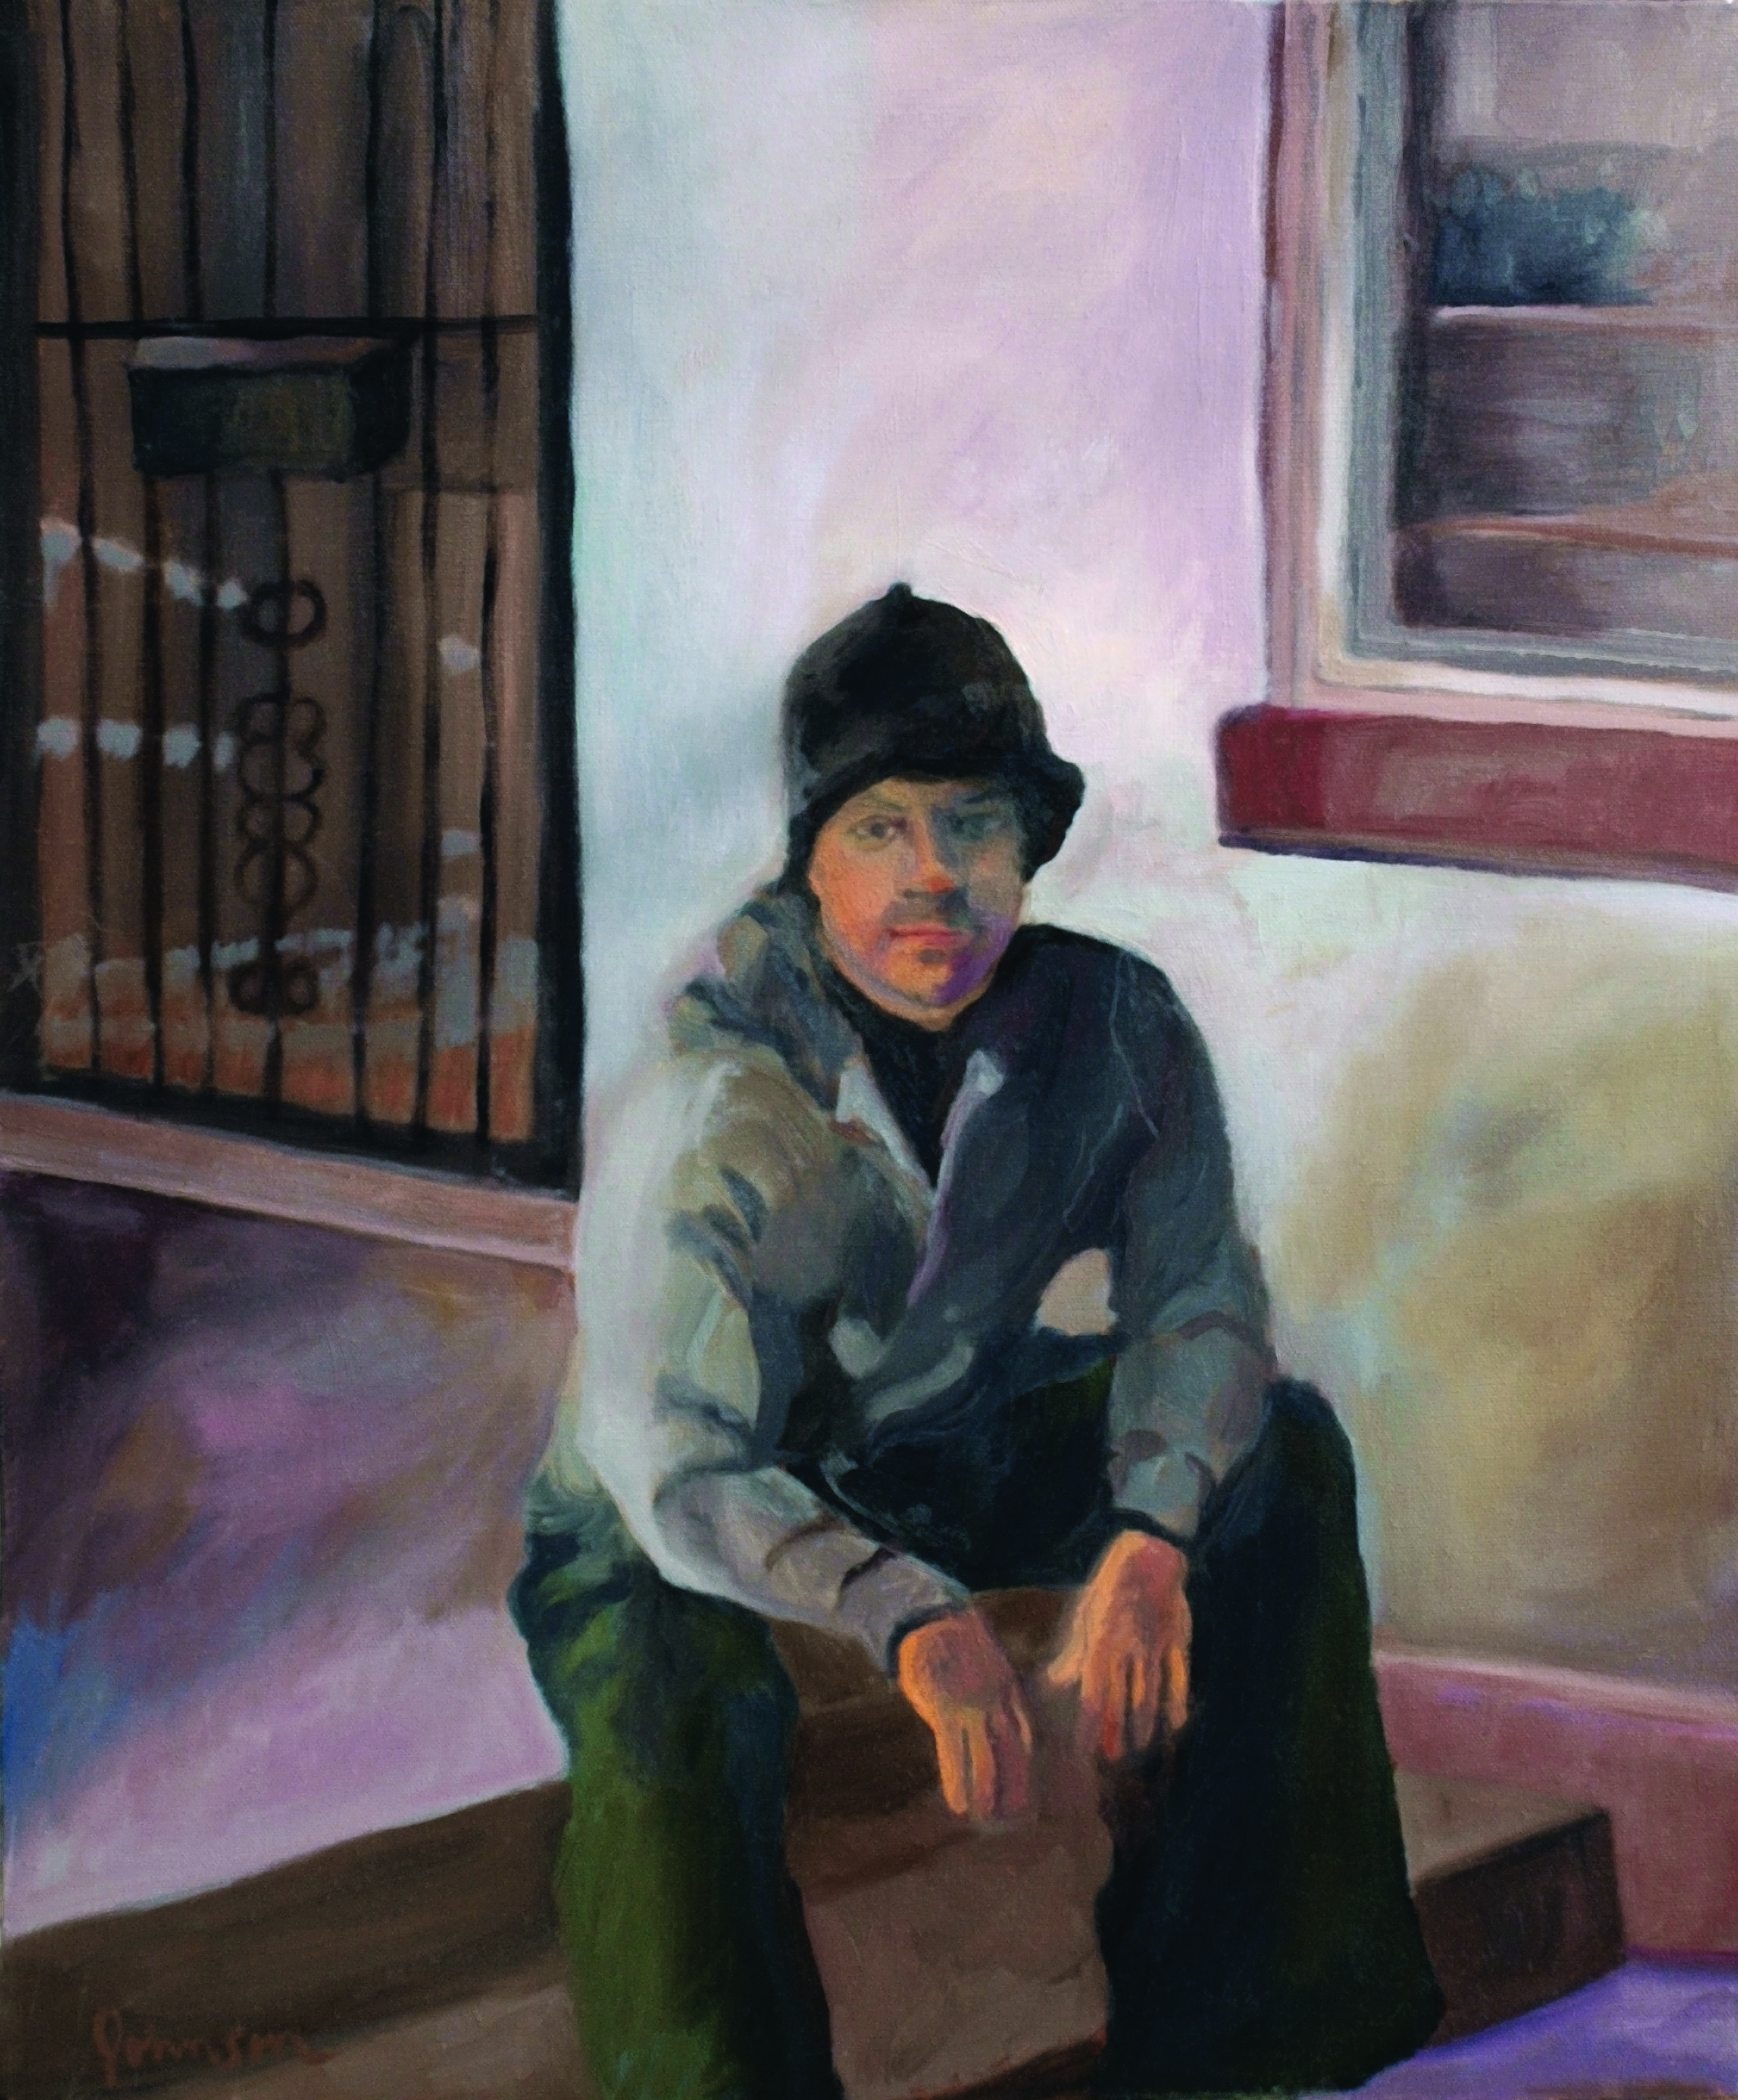 Johnson_Rochelle_Keith_24x20in_oil on canvas.jpg